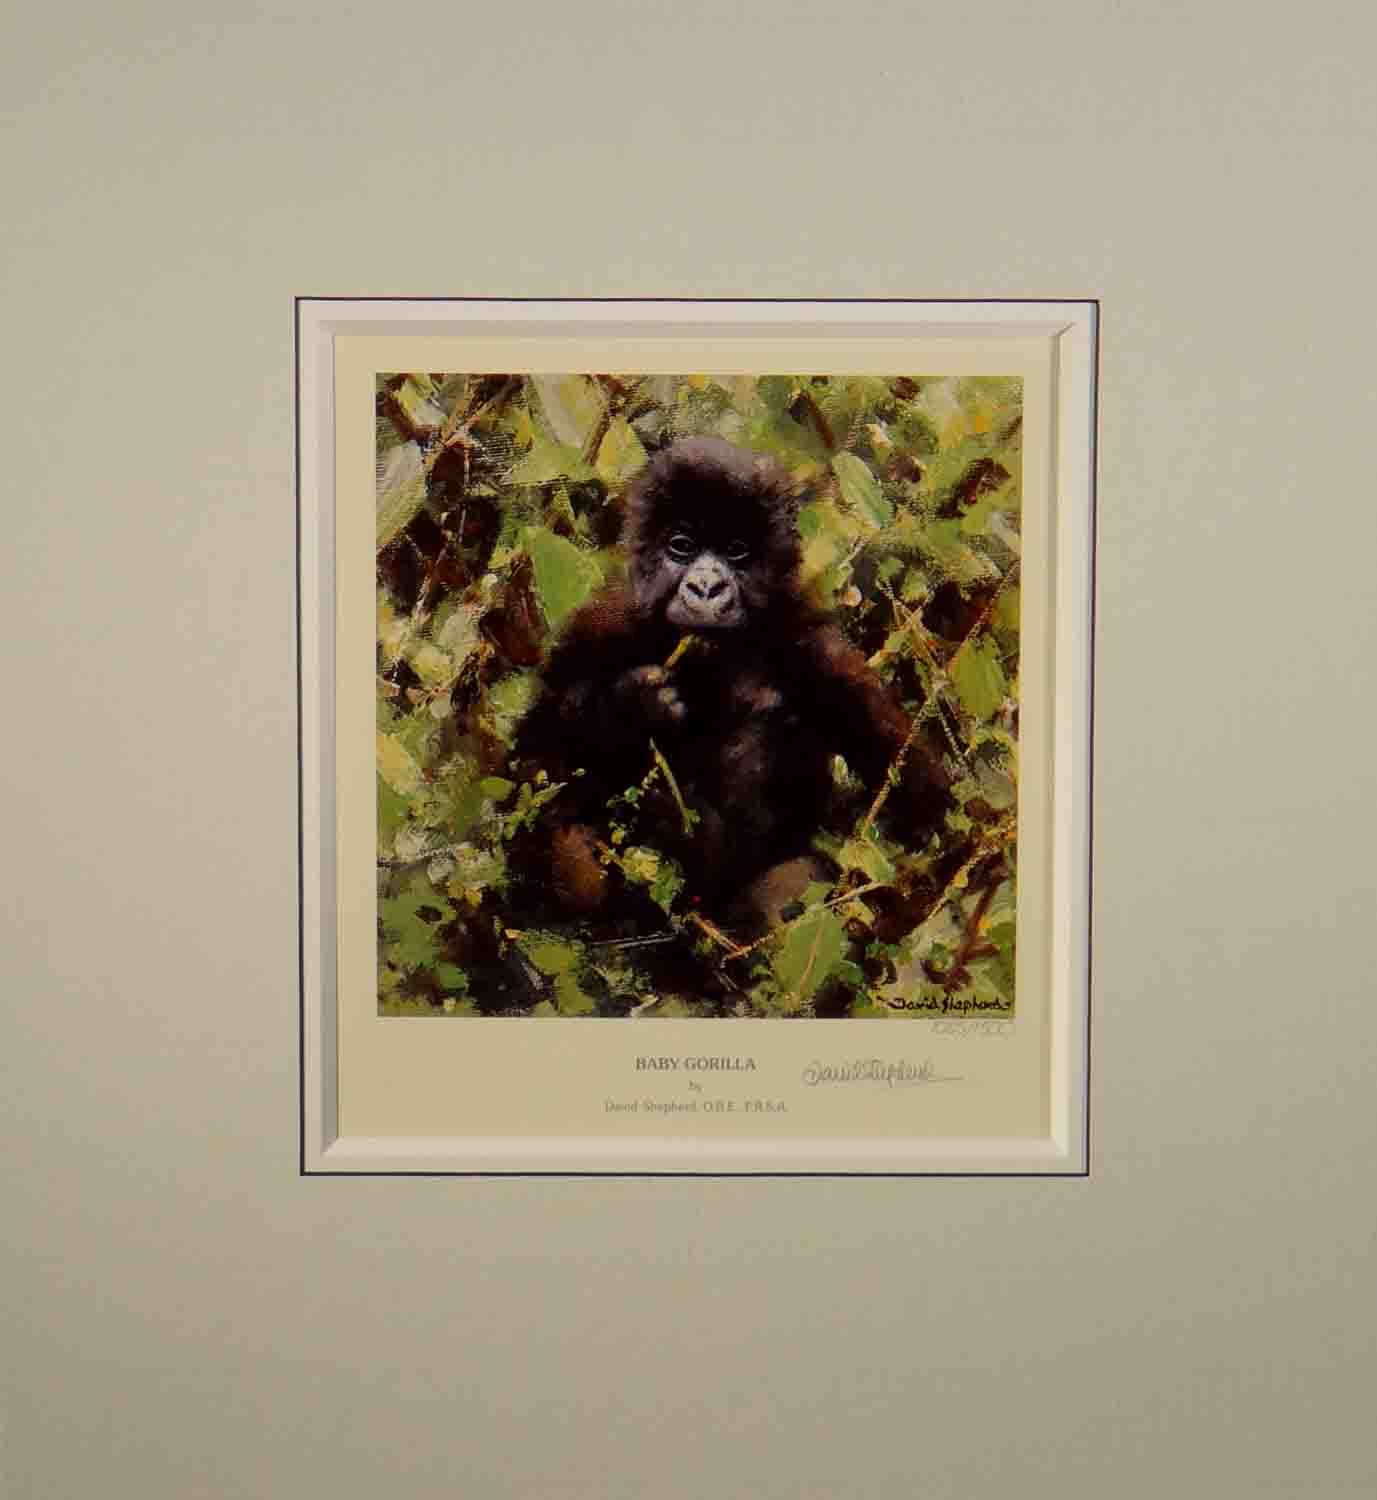 david shepherd, baby Gorilla, signed, limited edition, print